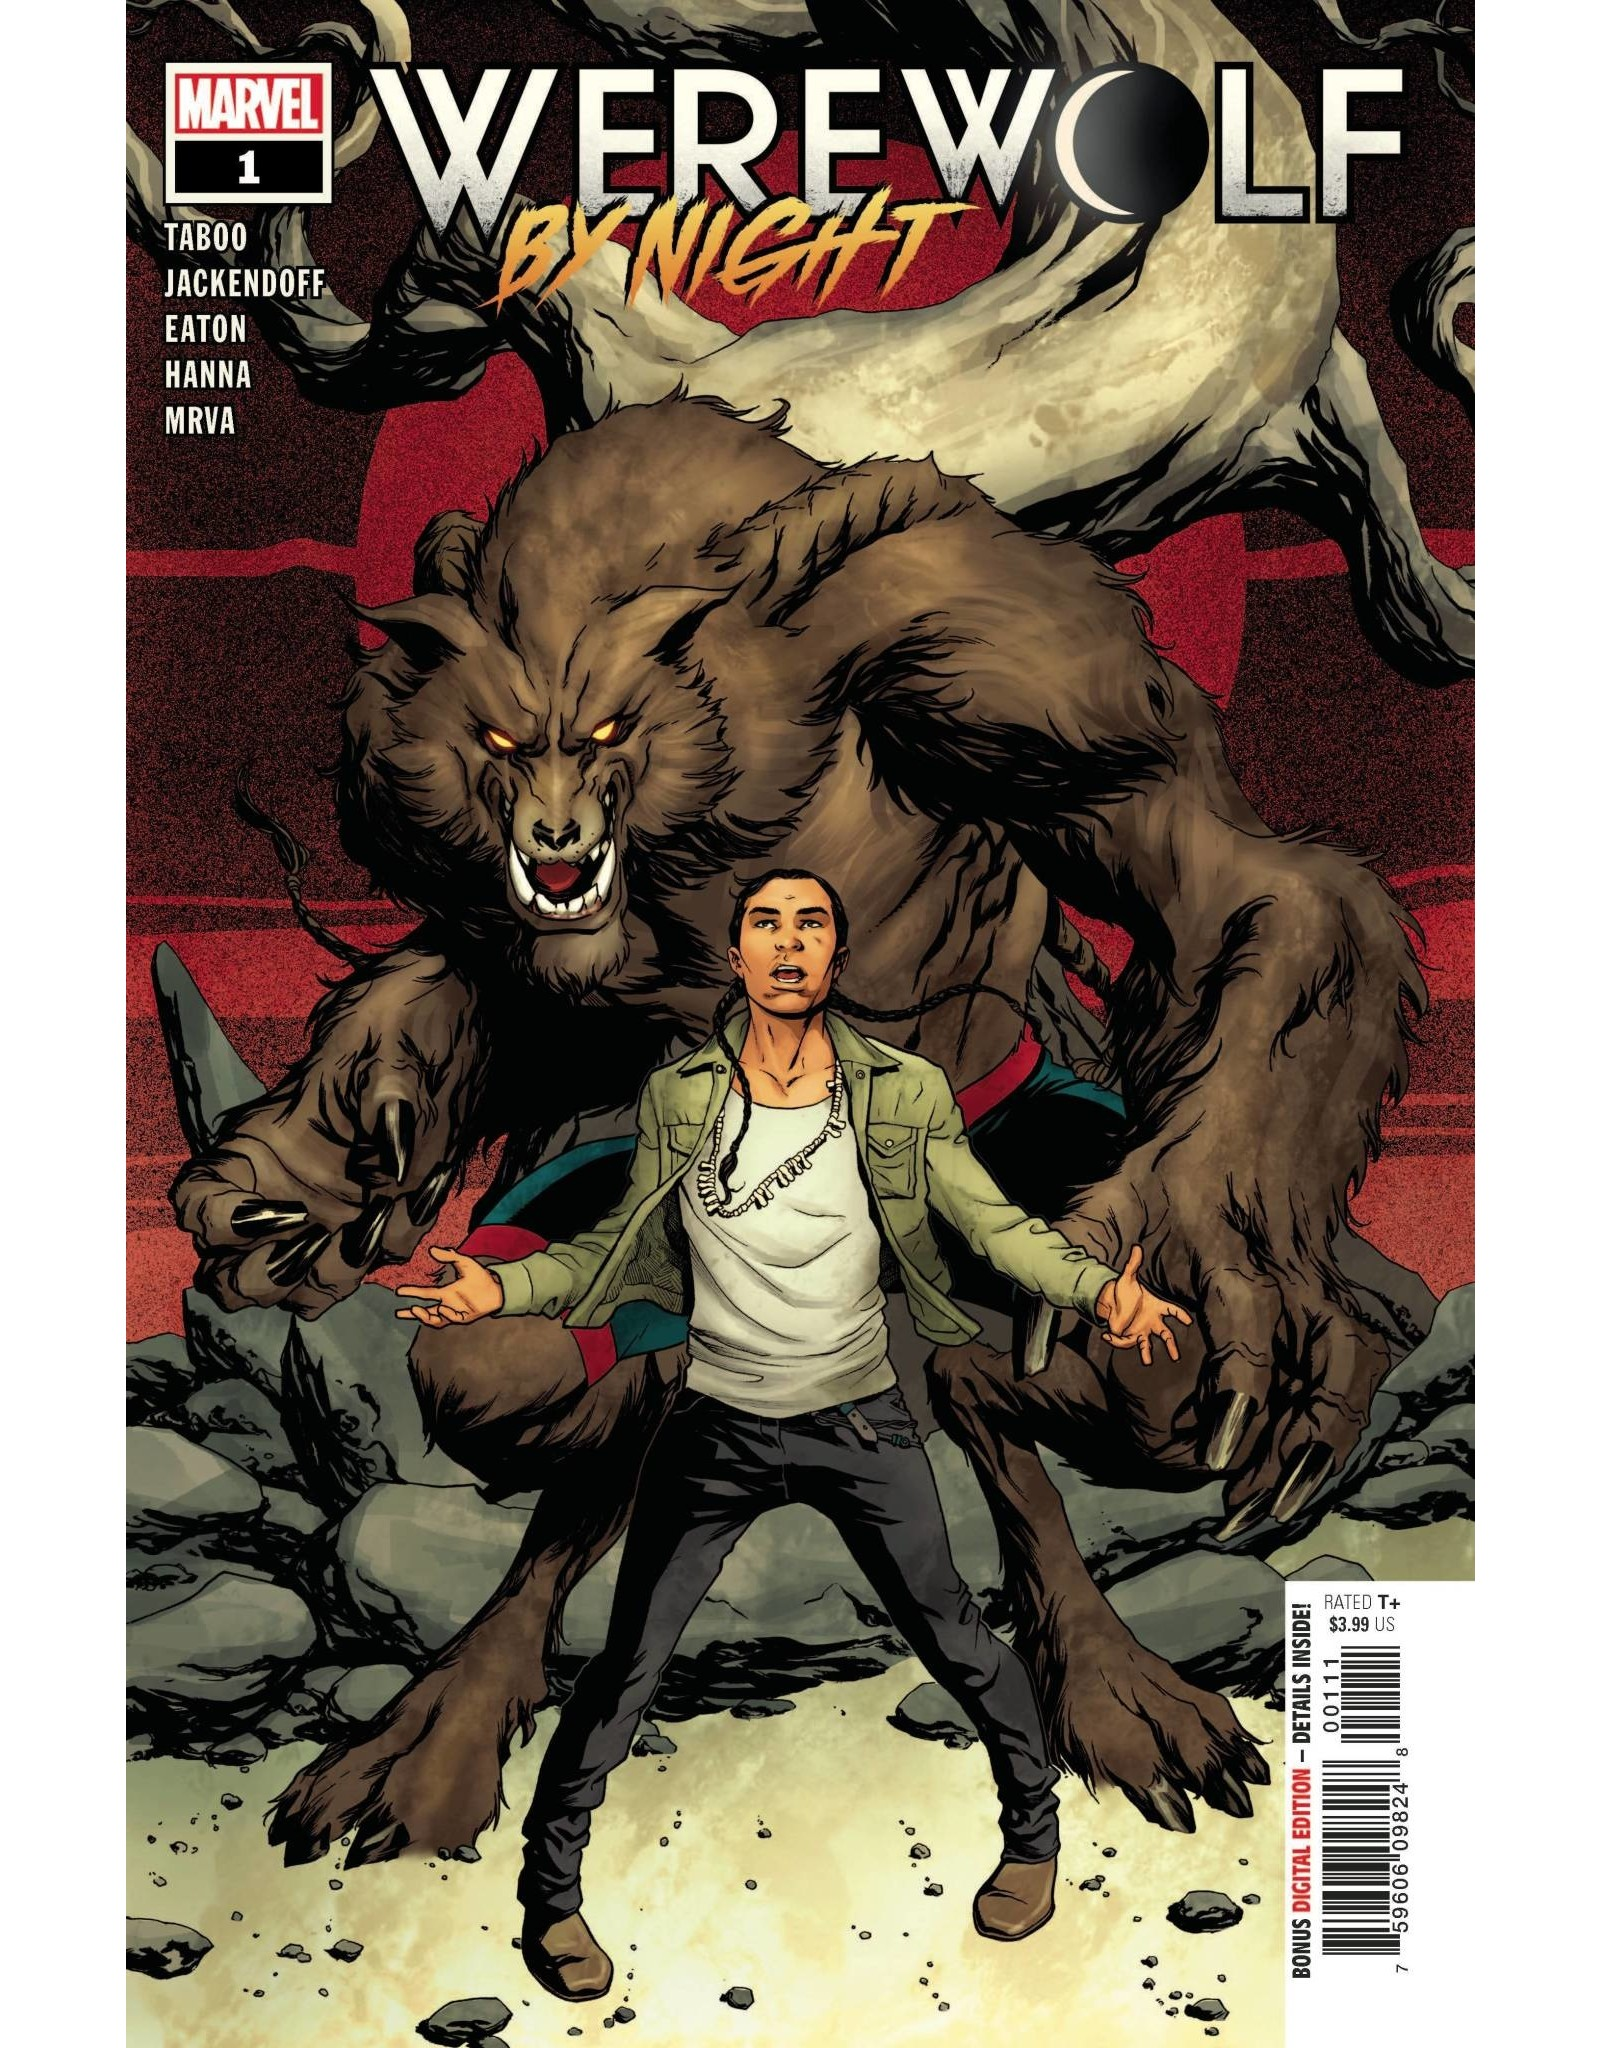 Marvel Comics WEREWOLF BY NIGHT #1 (OF 4)